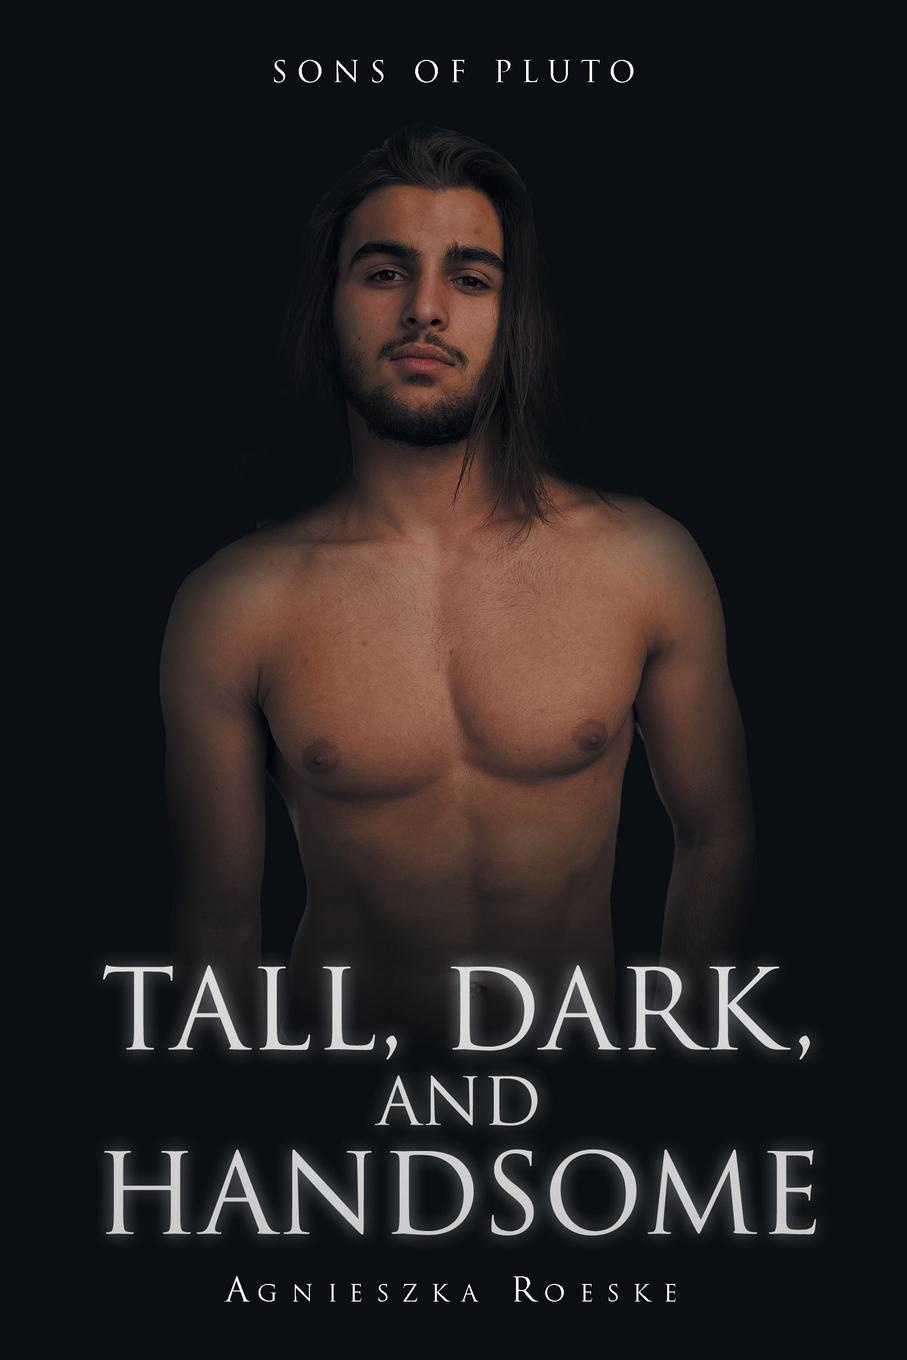 Agnieszka Roeske Tall, Dark, and Handsome susan connell tall dark and temporary